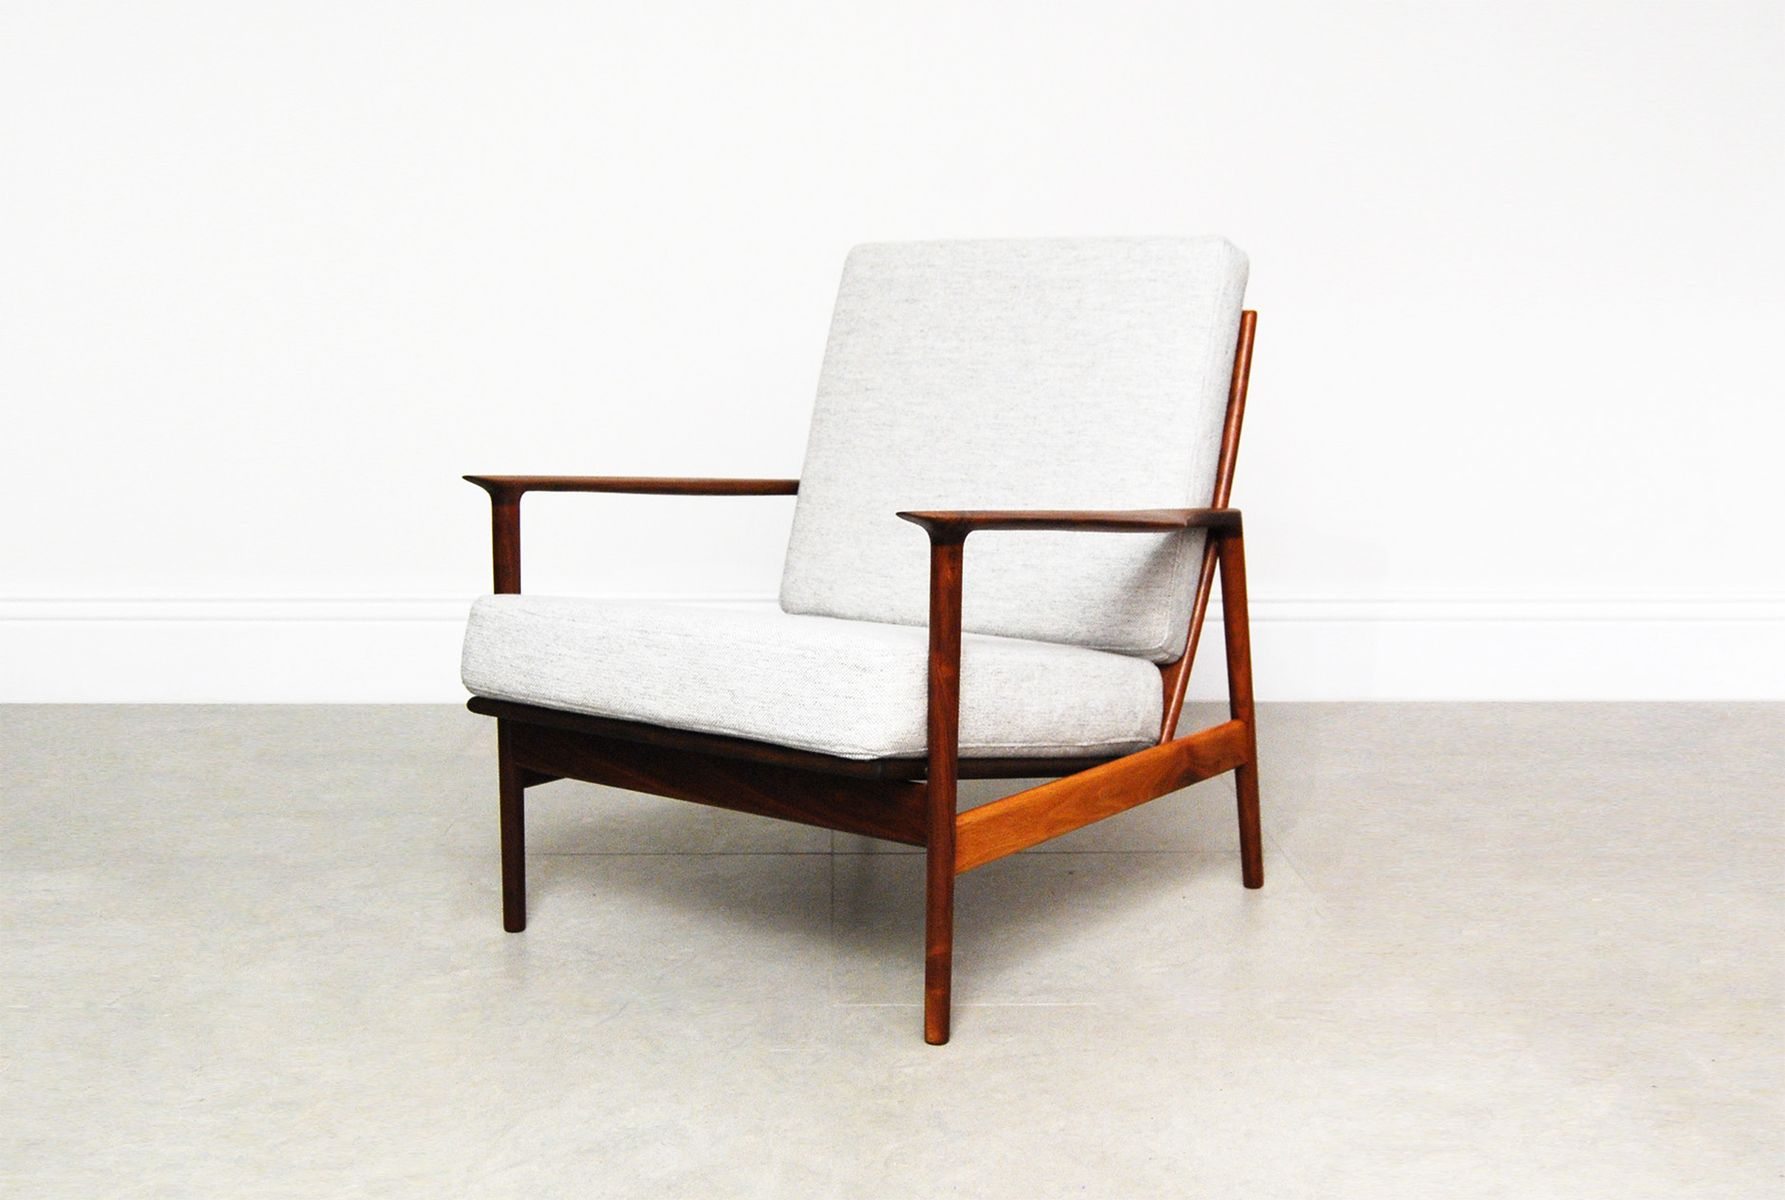 Lounge Chair By Ib Kofod Larsen For Selig For Sale At Pamono